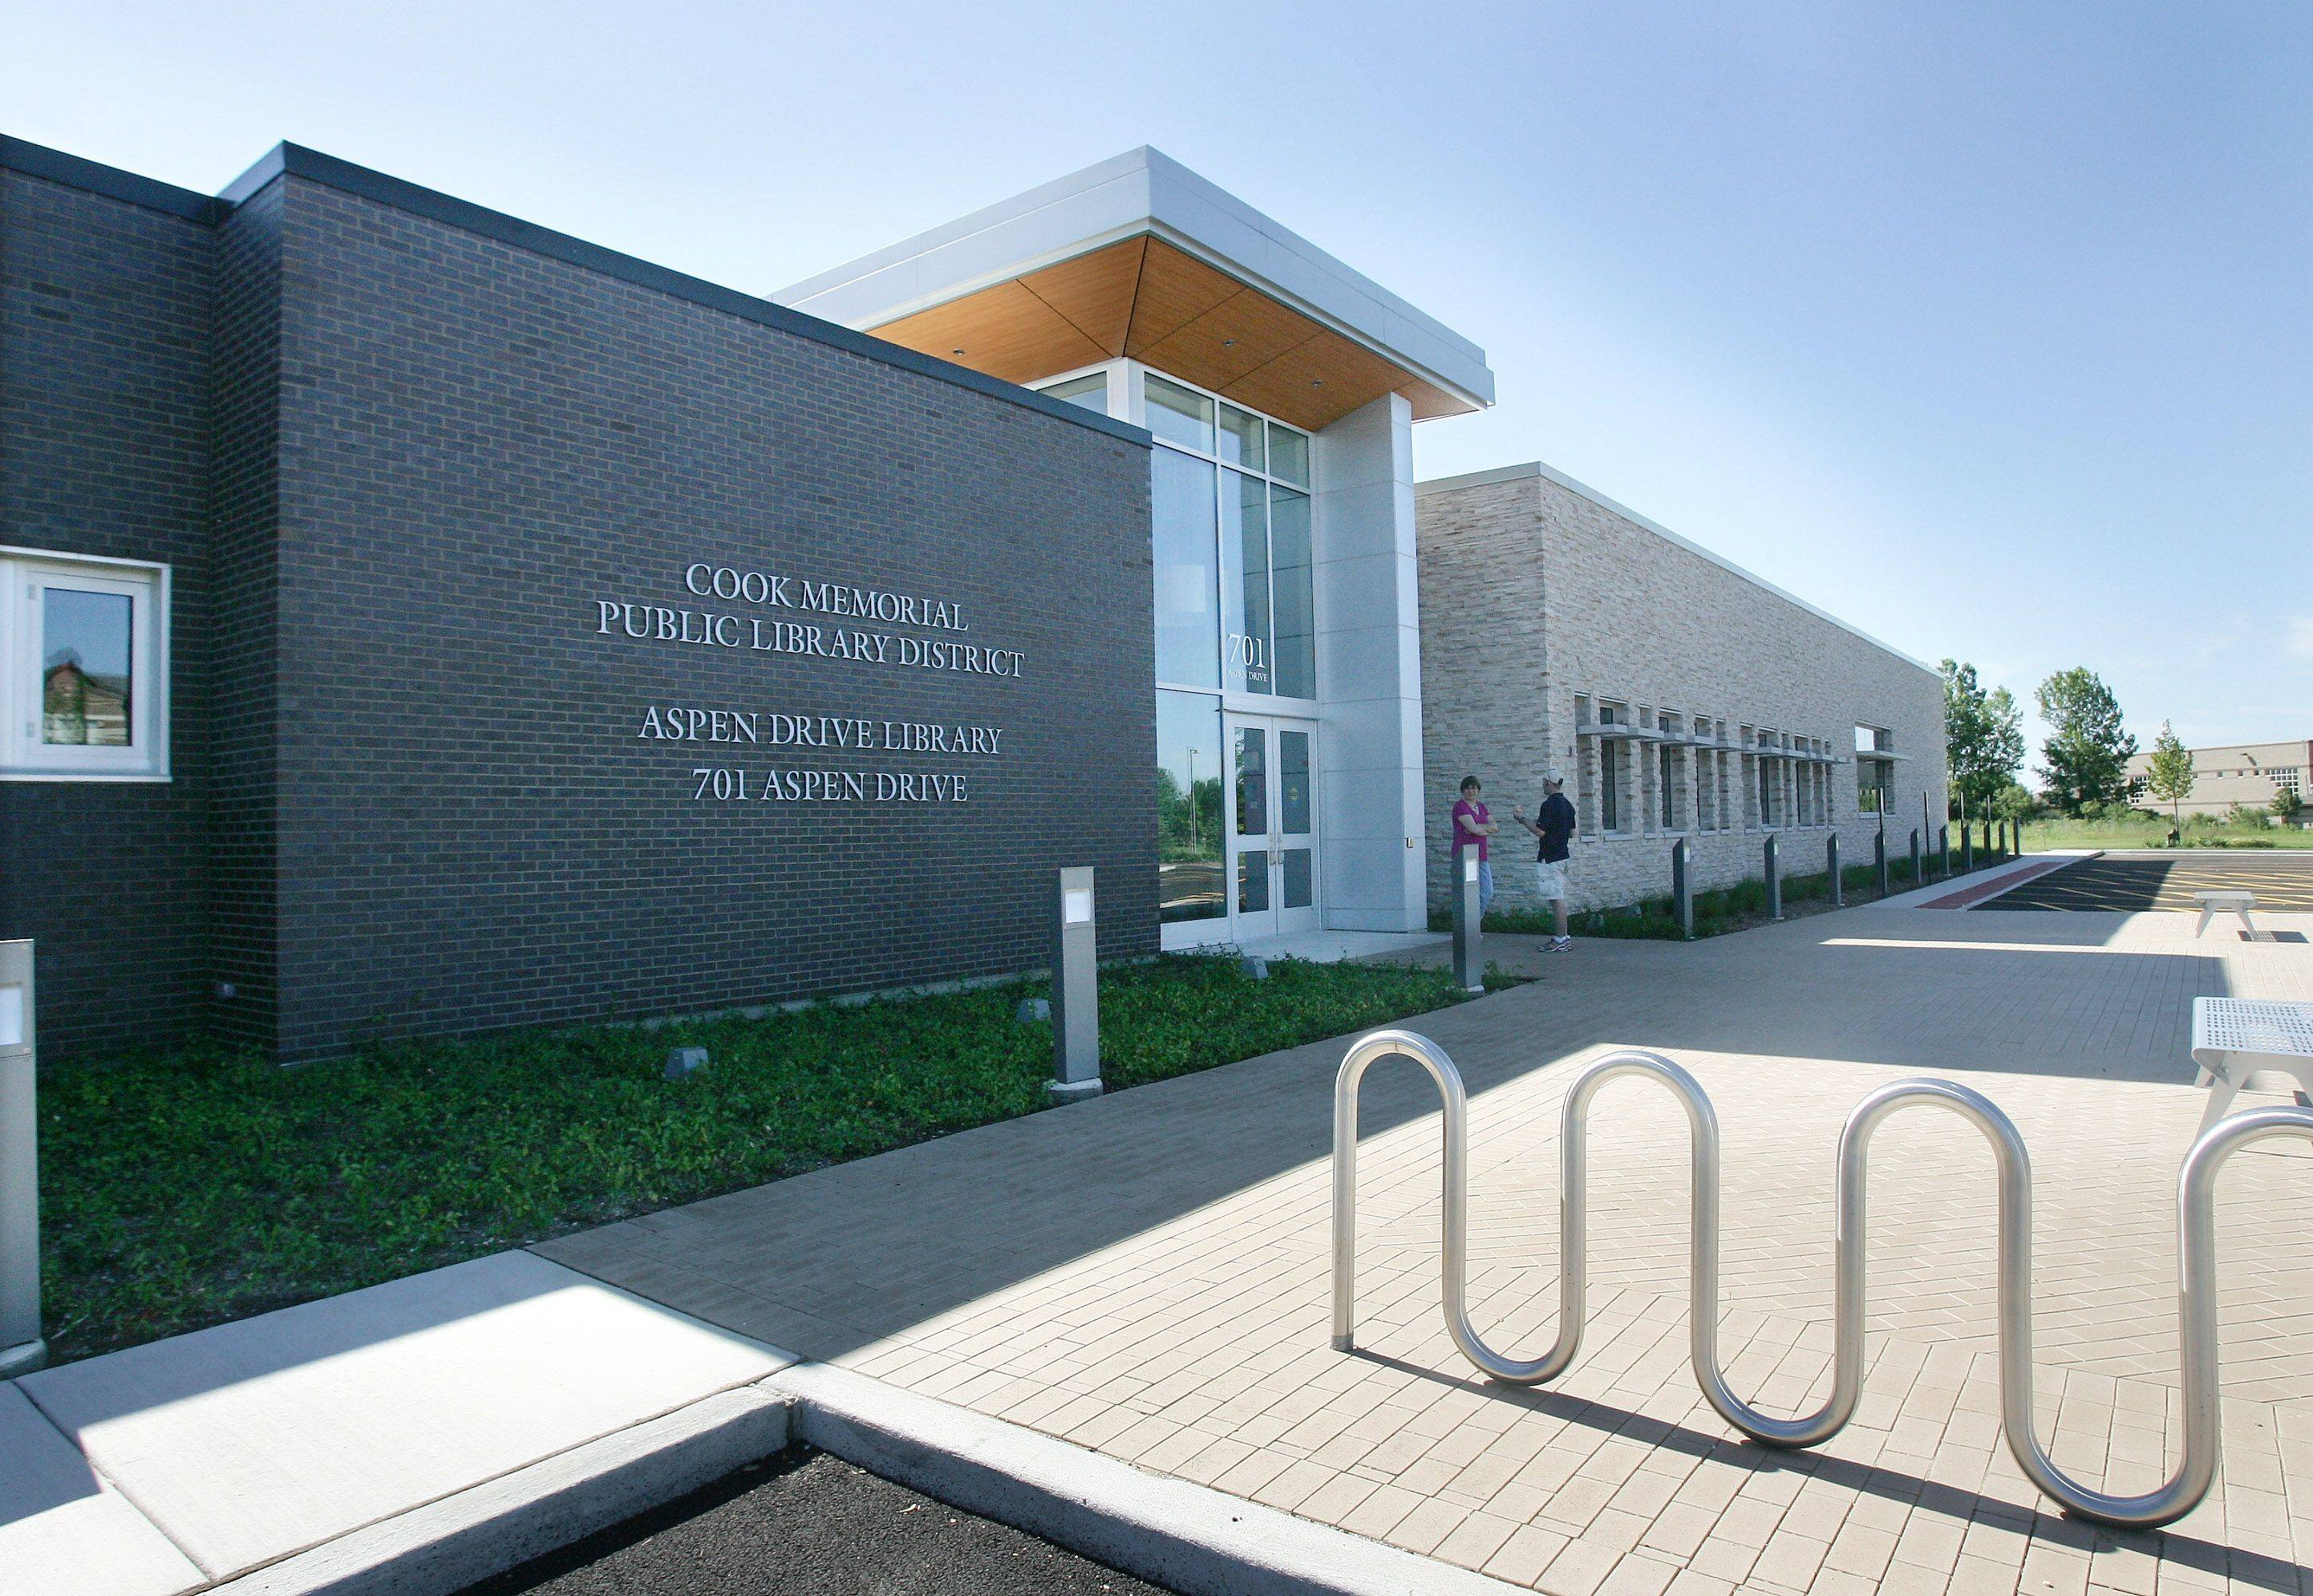 The Cook Memorial Public Library District's Aspen Drive Library in Vernon Hills opened last year, but a promised $500,000 state grant never was delivered.